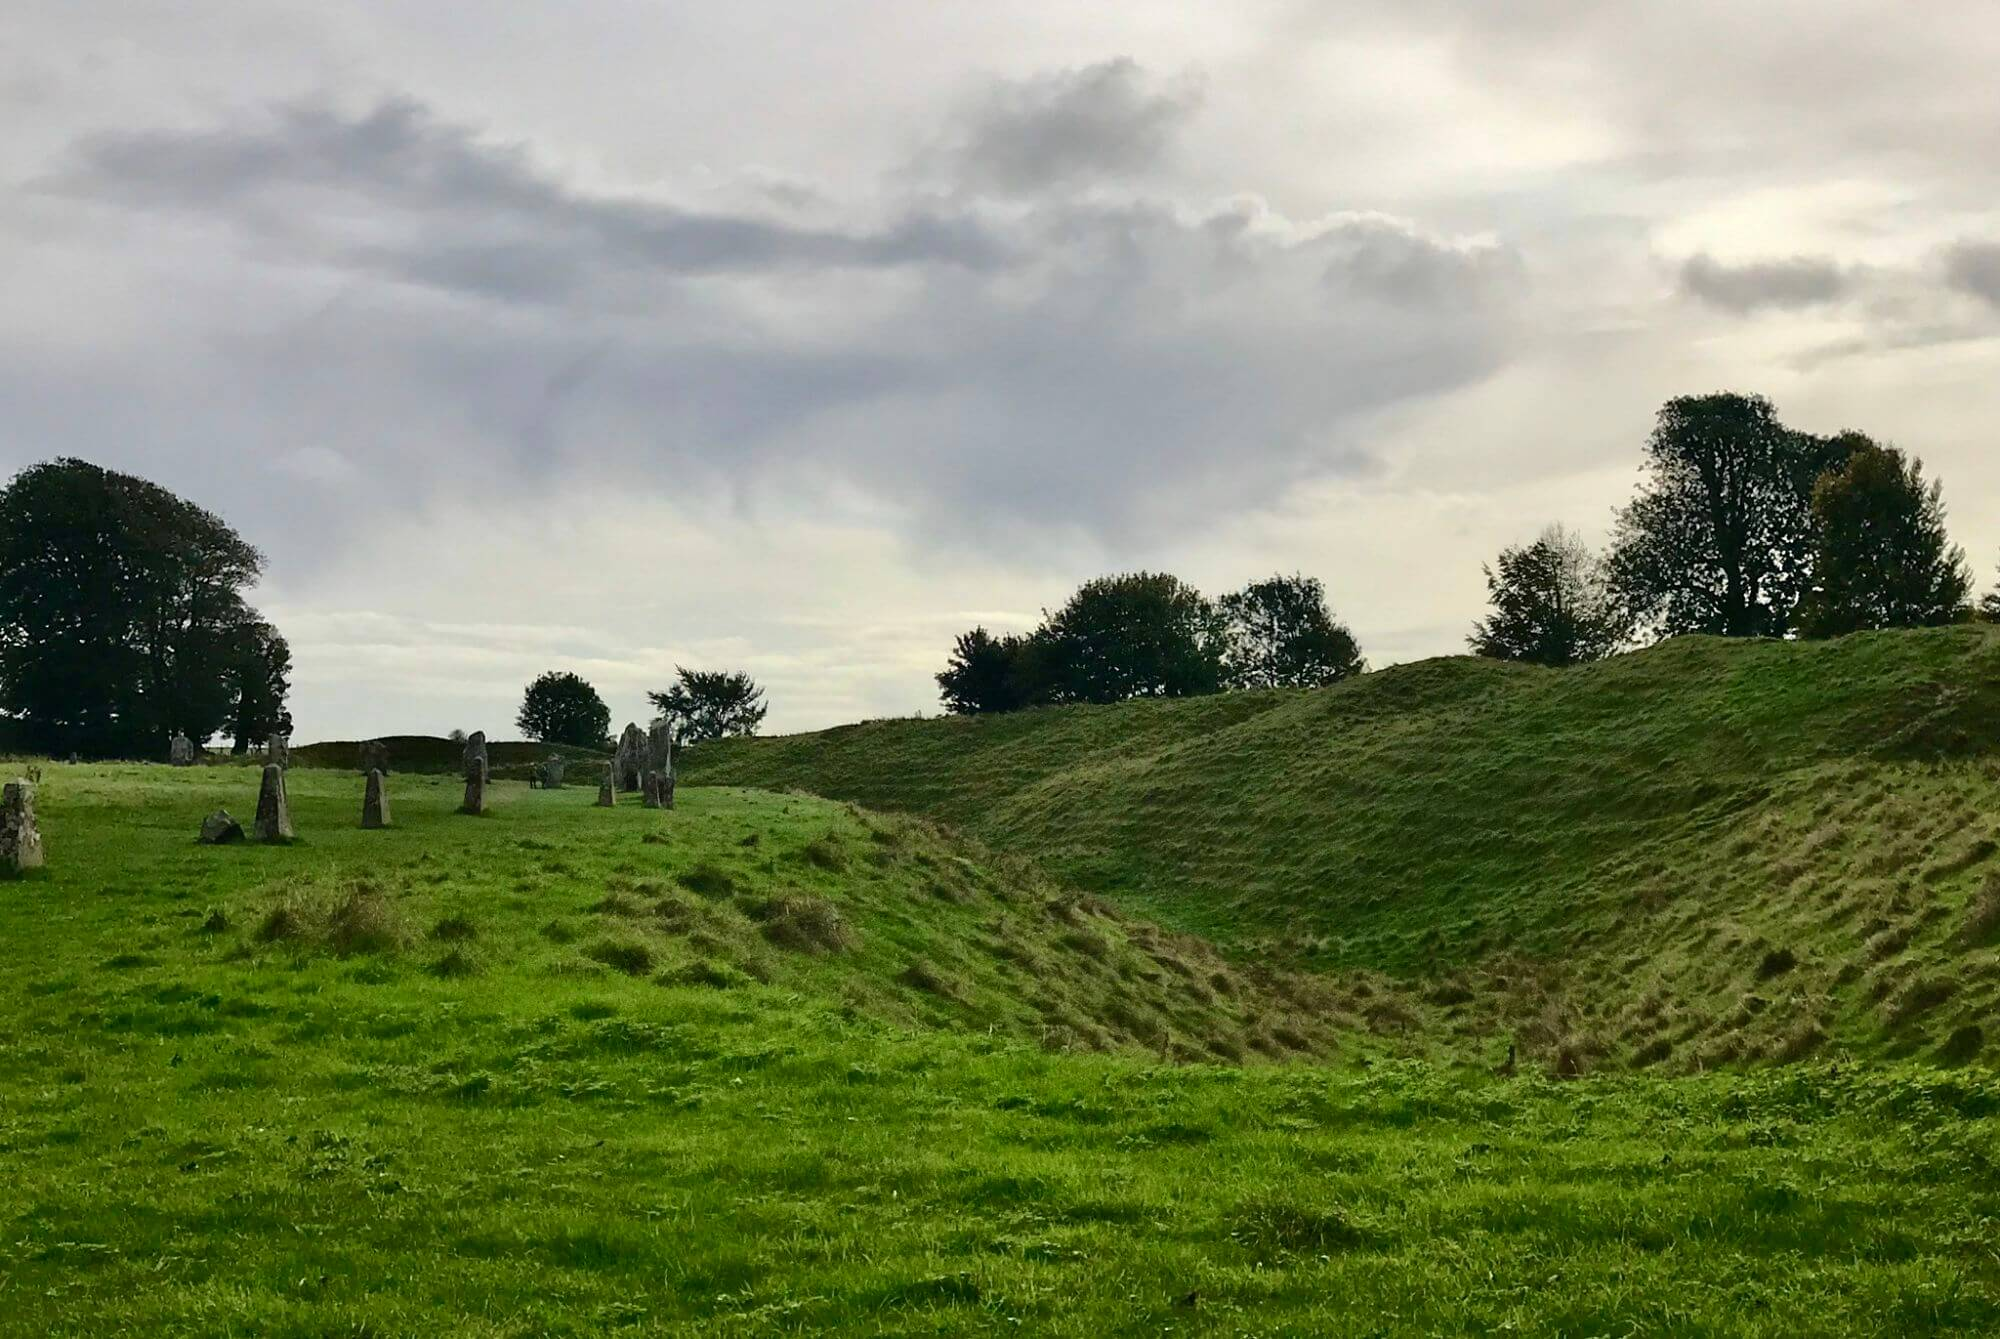 A portion of Avebury stone circle in England